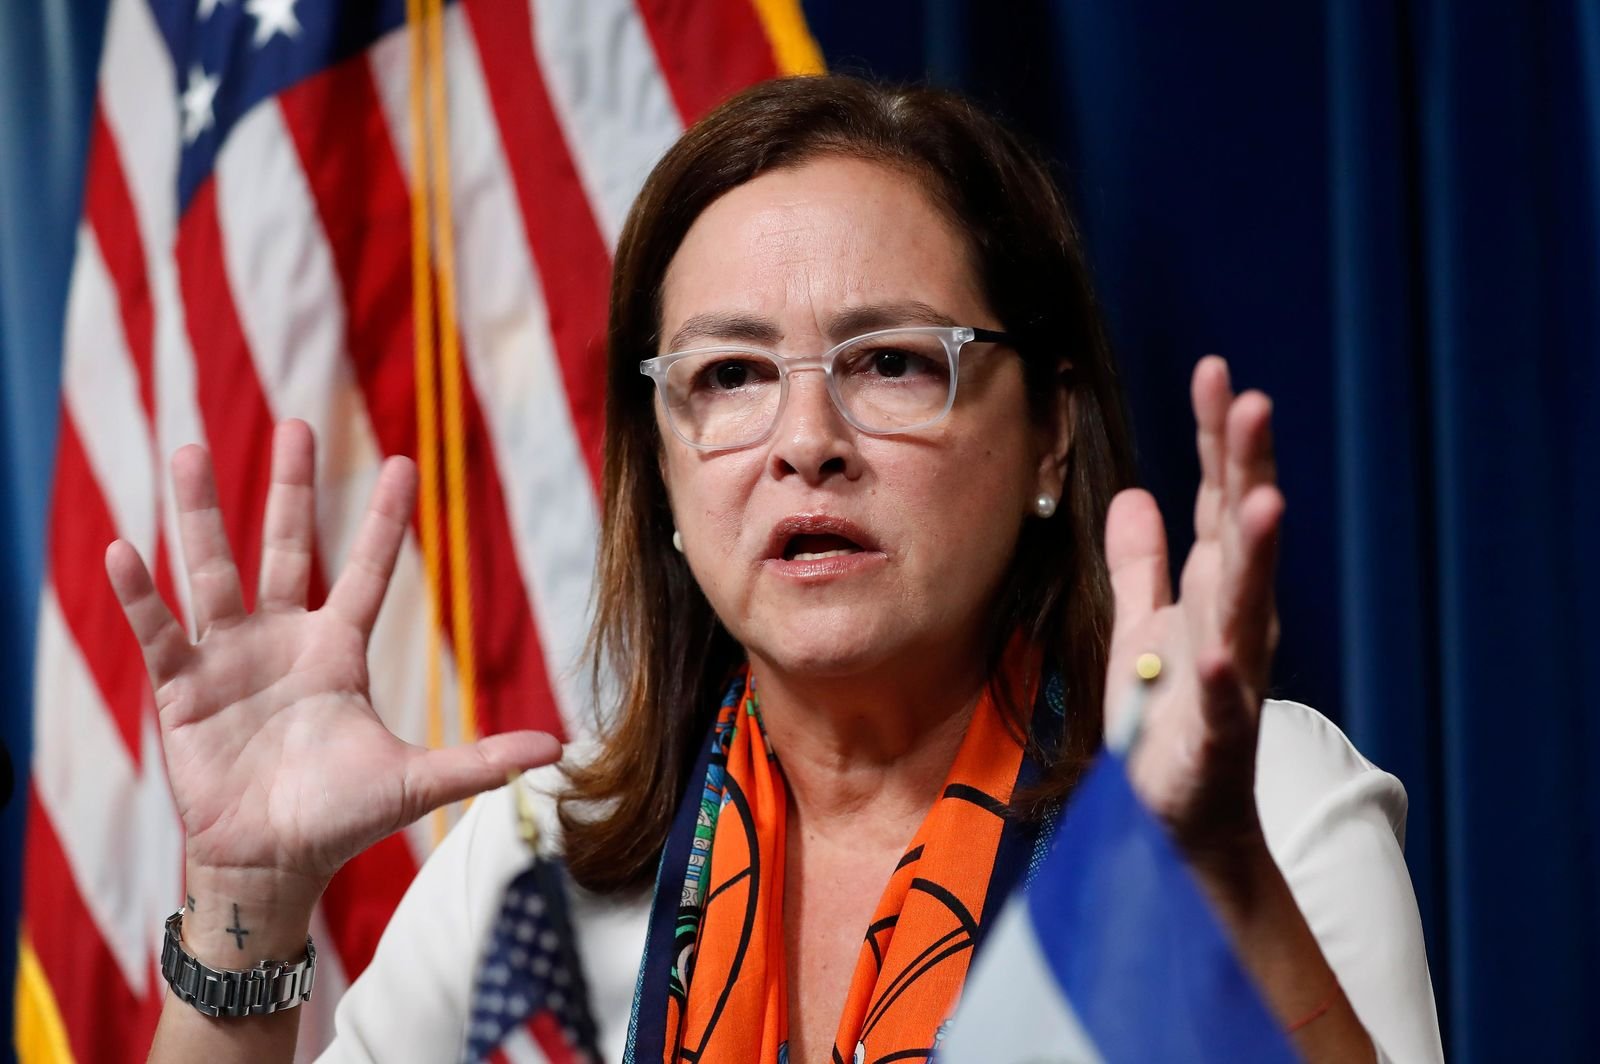 El Salvador Foreign Affairs Minister Alexandra Hill  speaks during a news conference with acting Secretary of Homeland Security Kevin McAleenan at the U.S. Customs and Border Protection headquarters in Washington, Friday, Sept. 20, 2019.  (AP Photo/Pablo Martinez Monsivais)